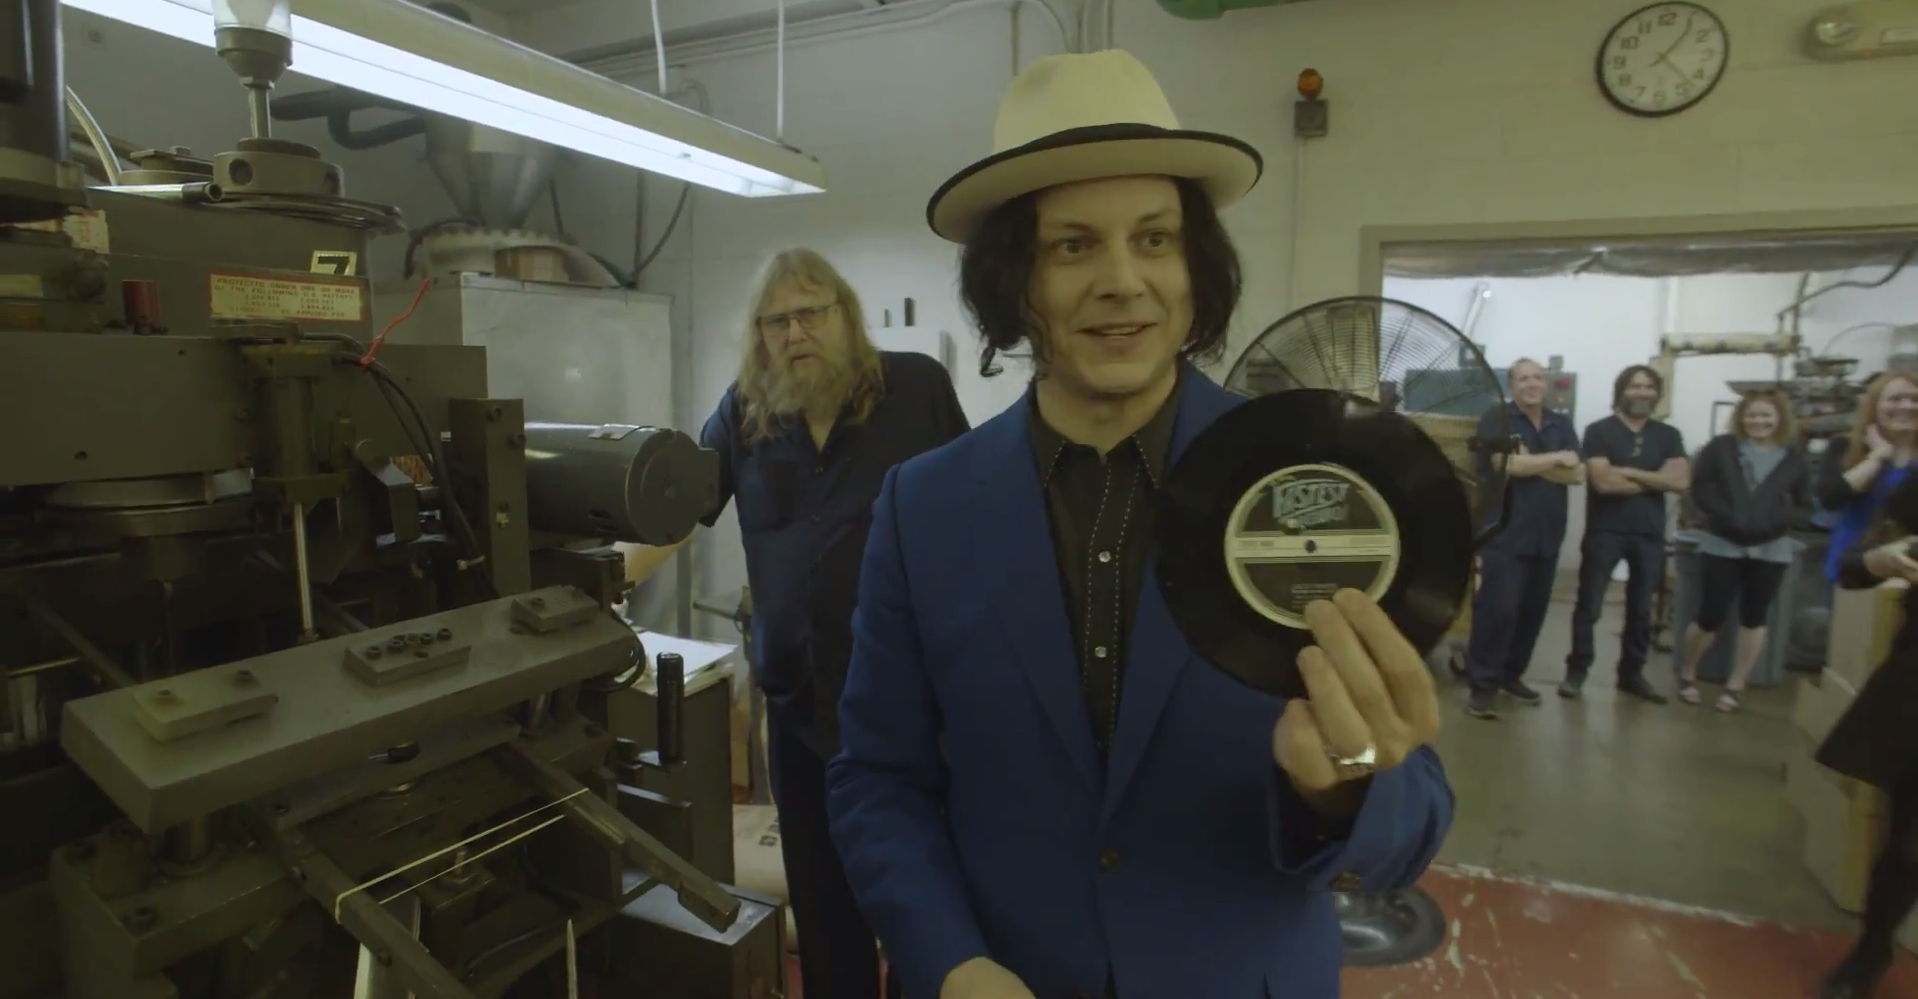 Jack White at the Third Man Records plant